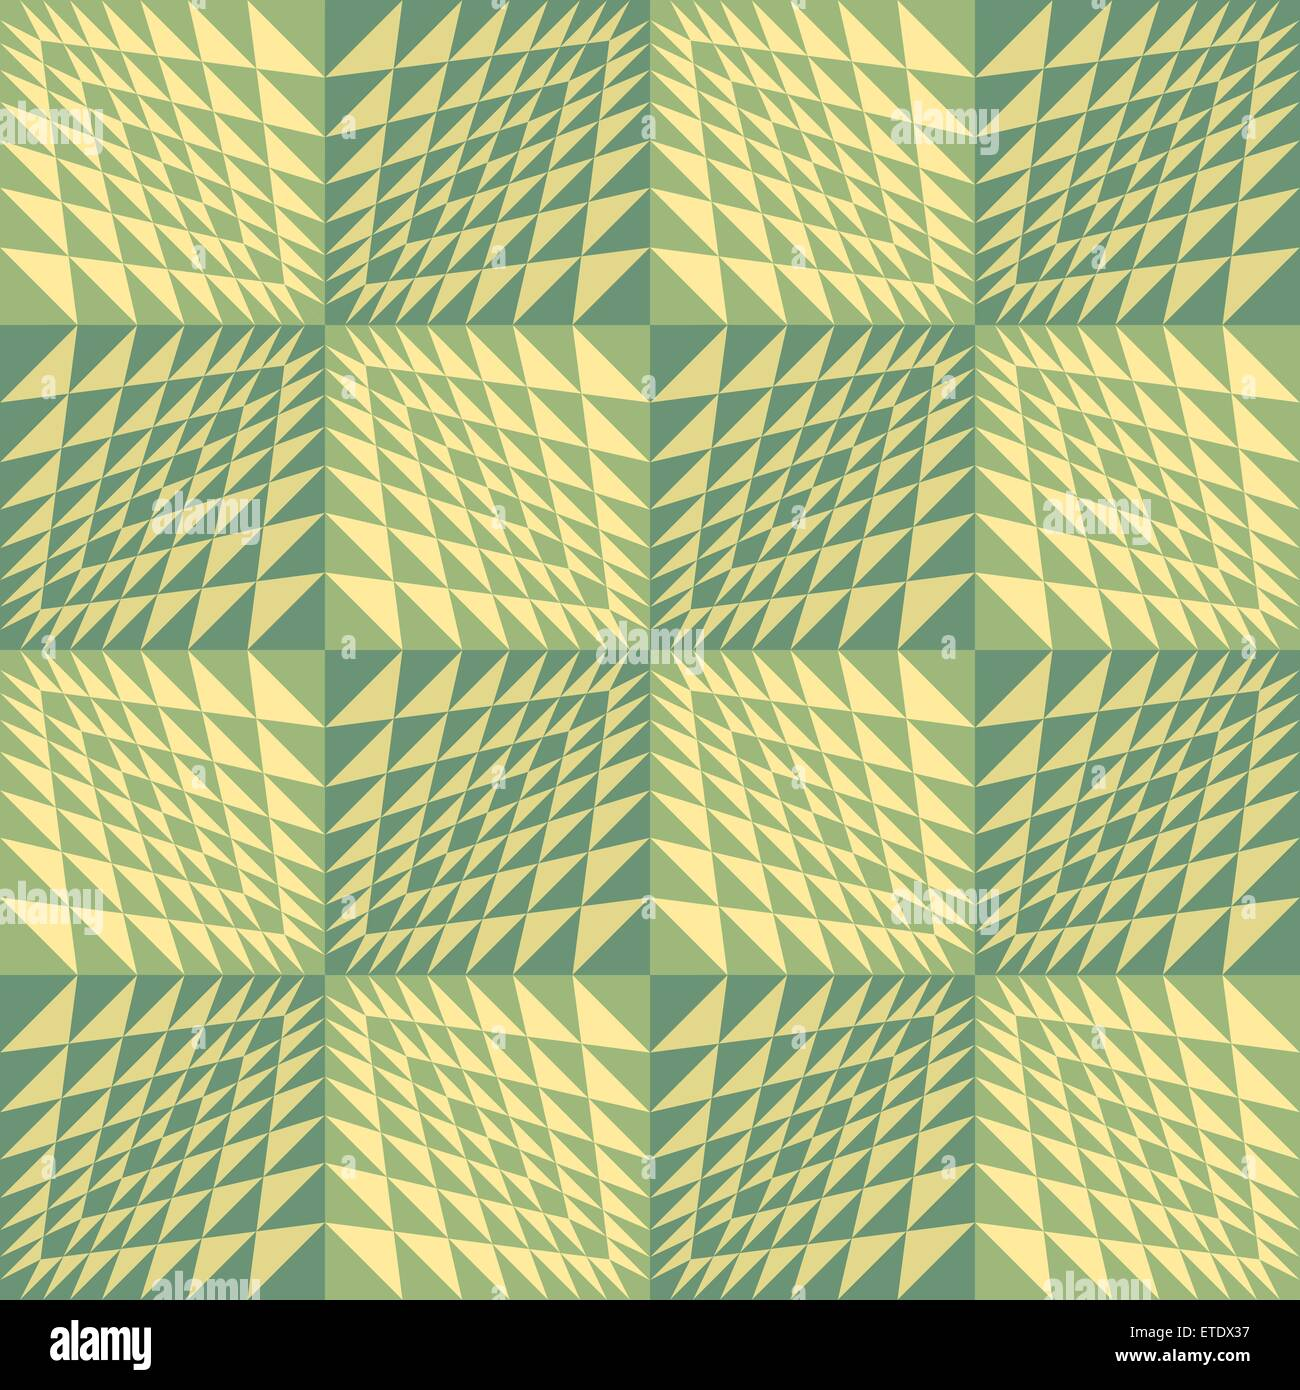 Abstract geometric background. Seamless wavy pattern. - Stock Image